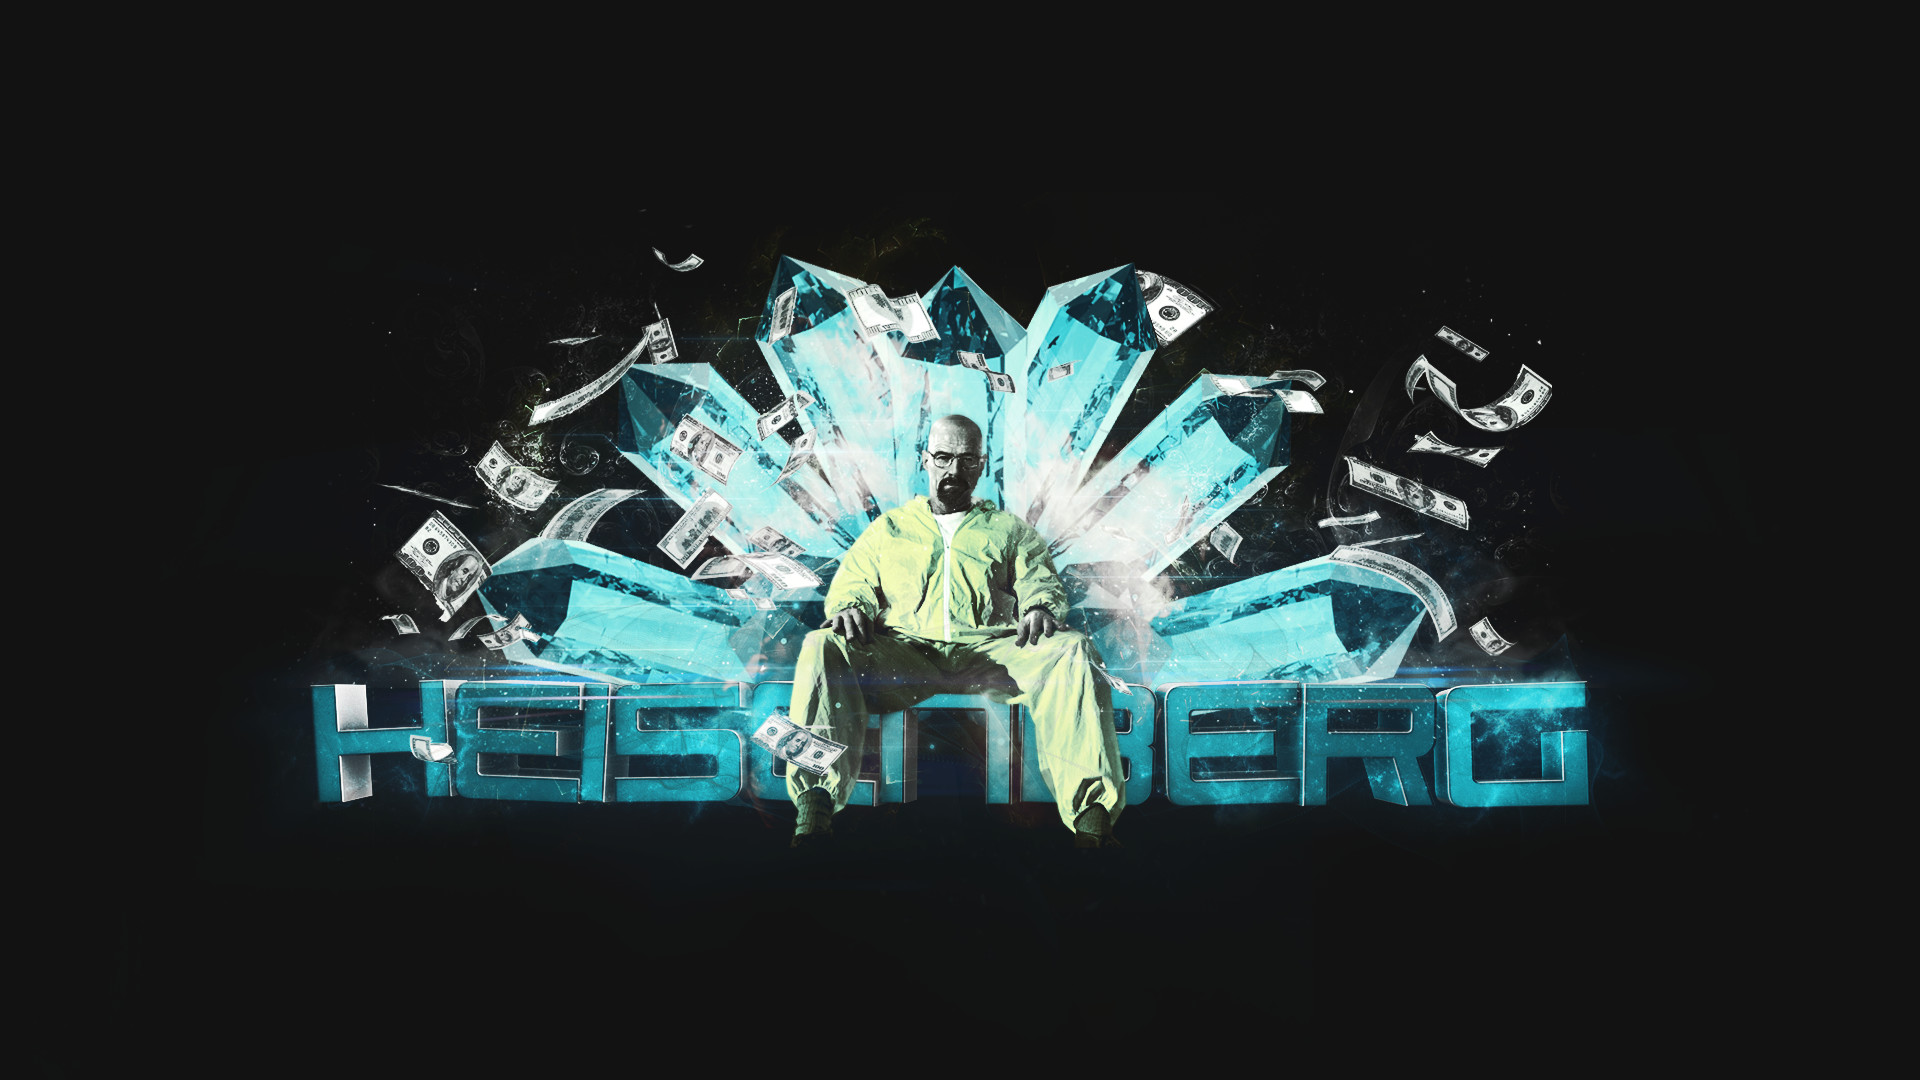 Hd Supreme Wallpaper Iphone X Breaking Bad Wallpaper 76 Images